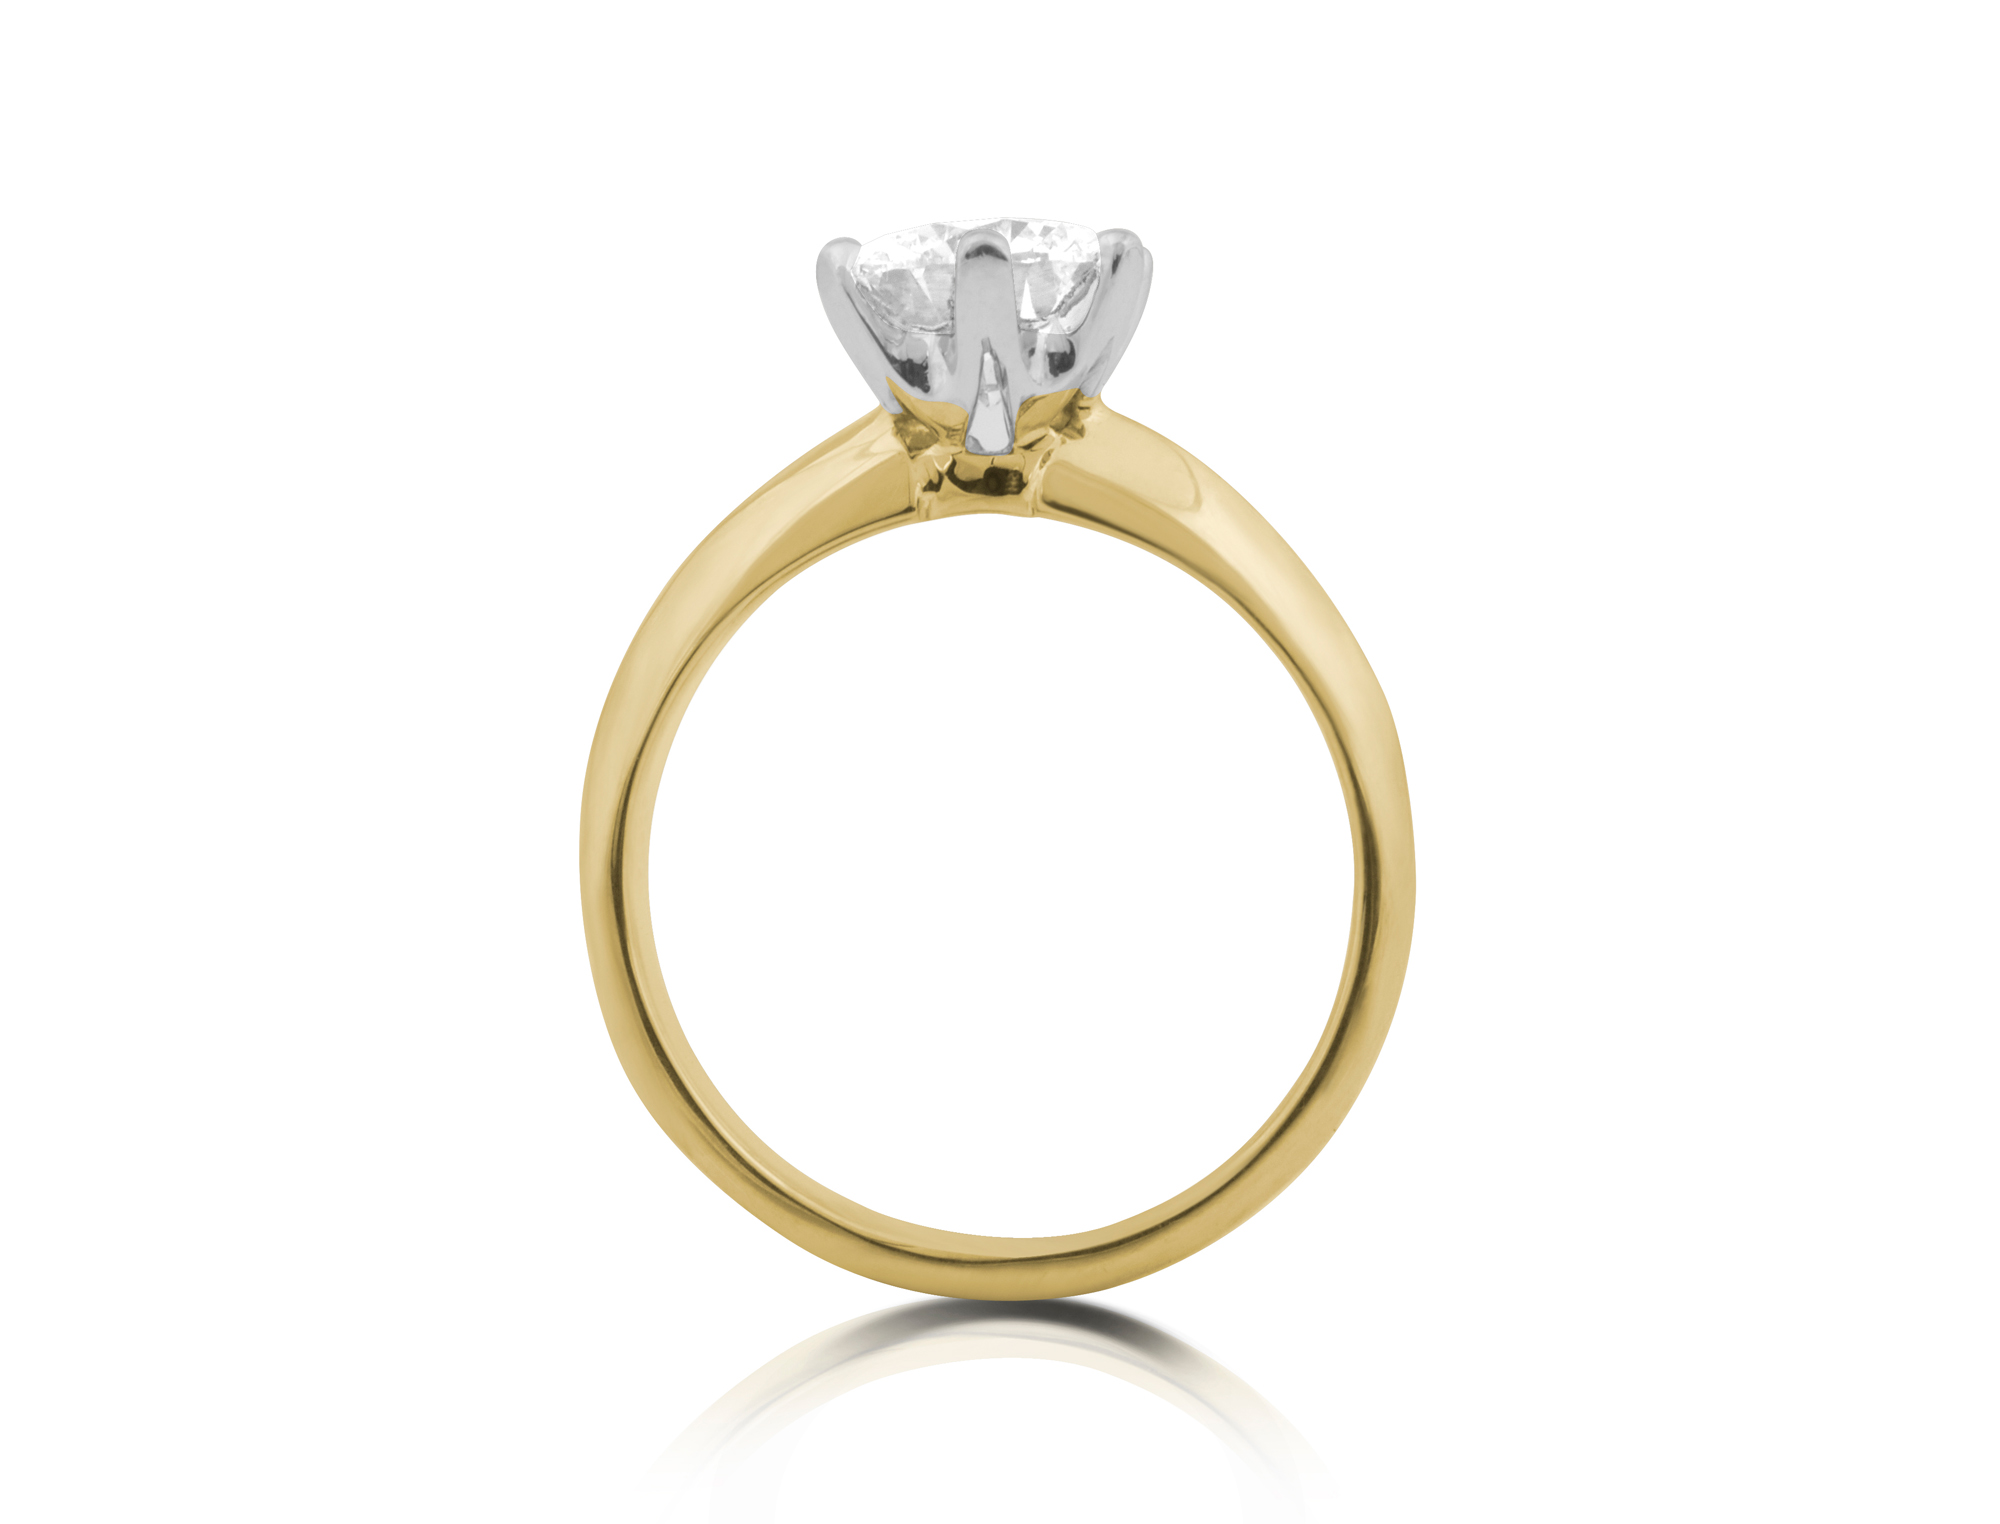 DJCRDS006 – 18ct Yellow & White Gold Tiffany Style 6 Claw Classic Engagem